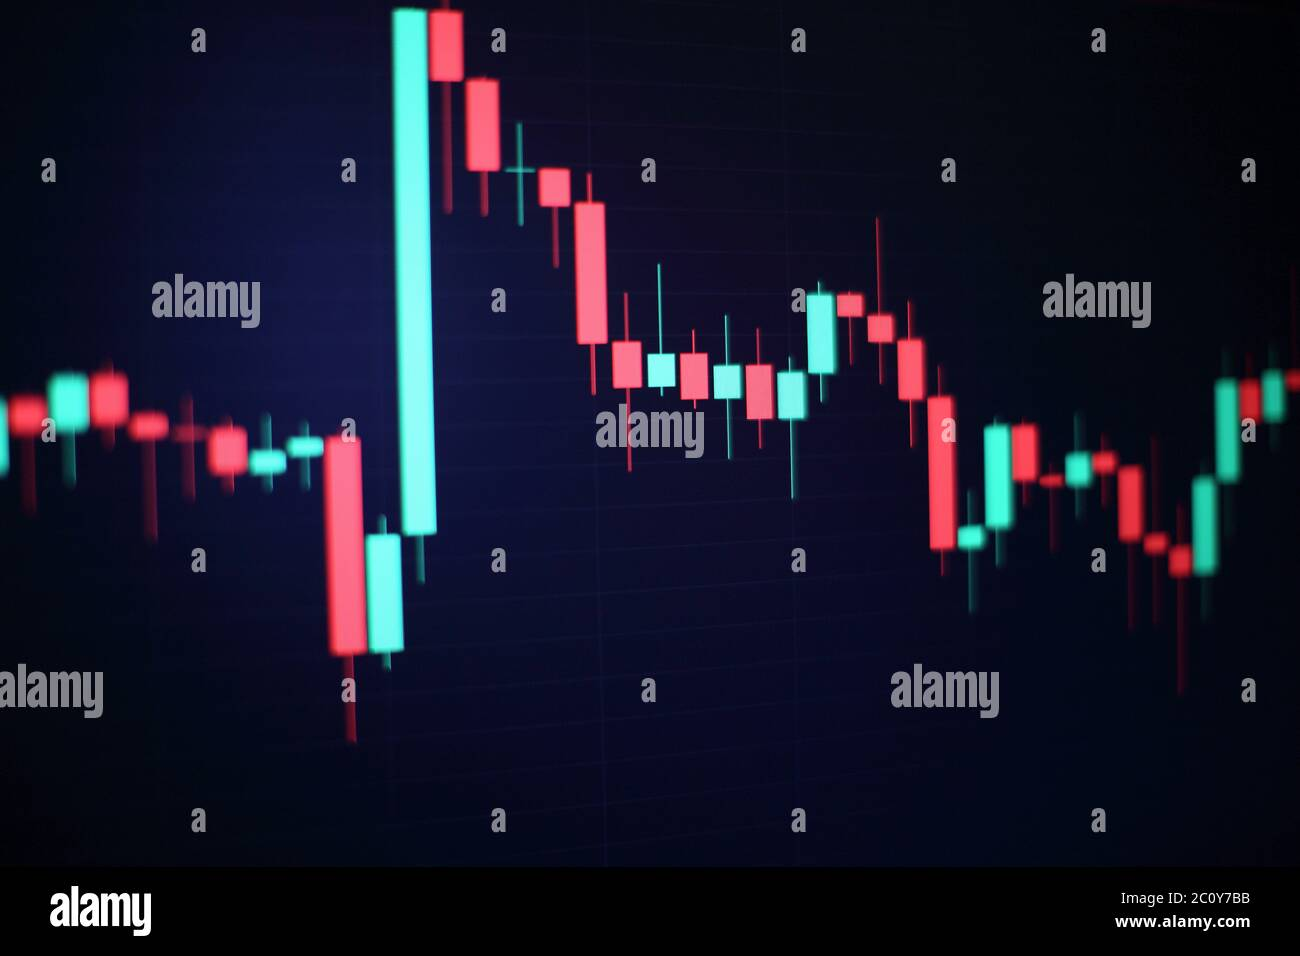 Currencies trading via digital info with stock market graph background. Blockchain, Financial Internet Technology as a new trend marketing. Stock Photo